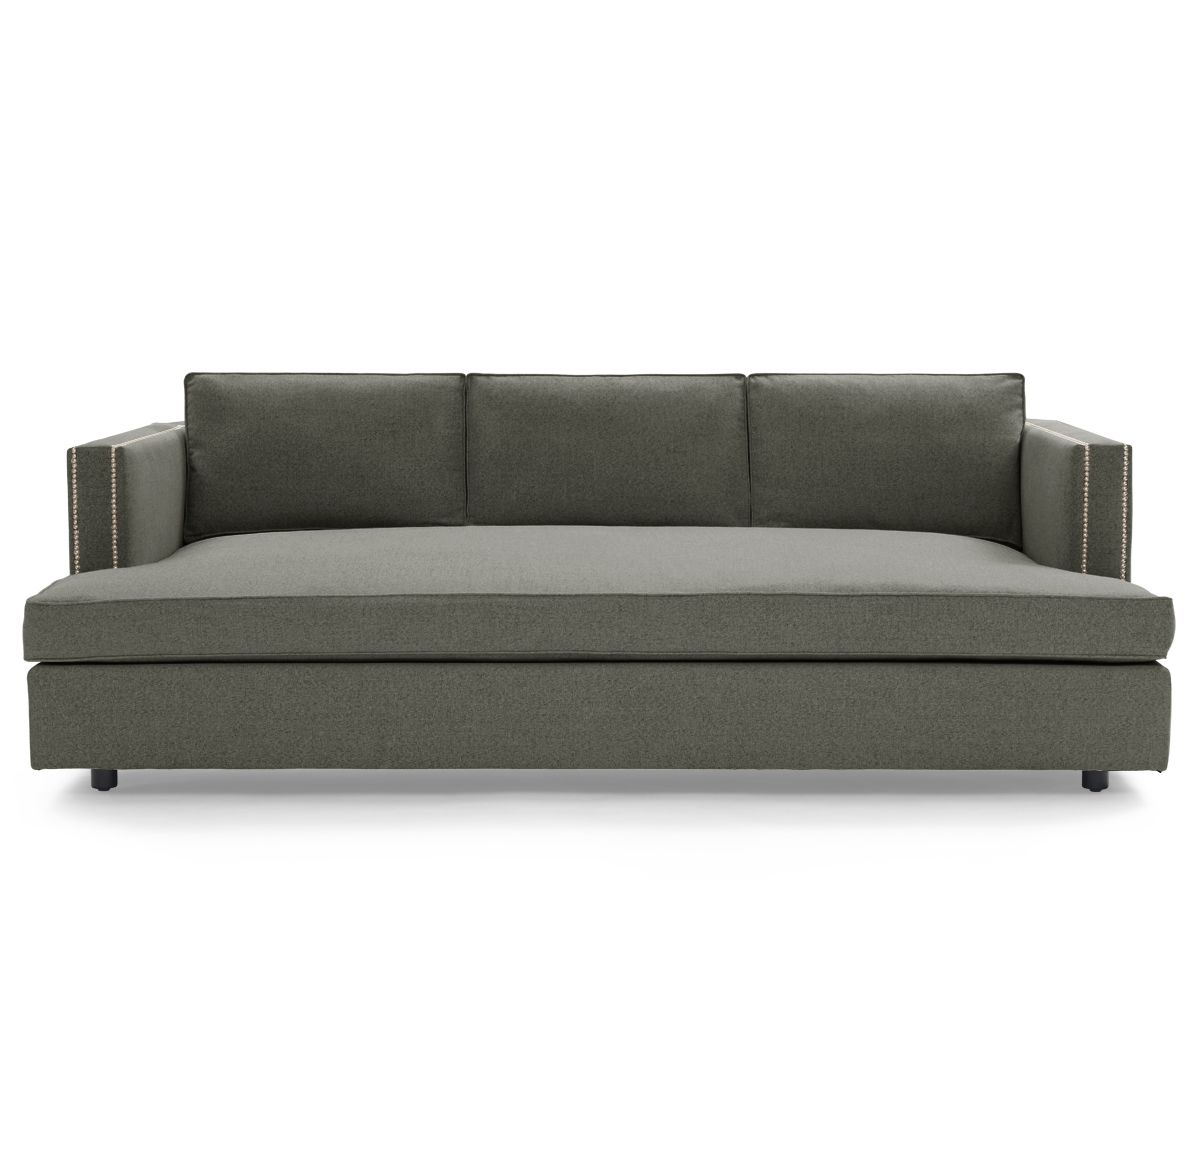 Keaton 84 Media Sofa Gold Sofa Sofa Contemporary Sofa